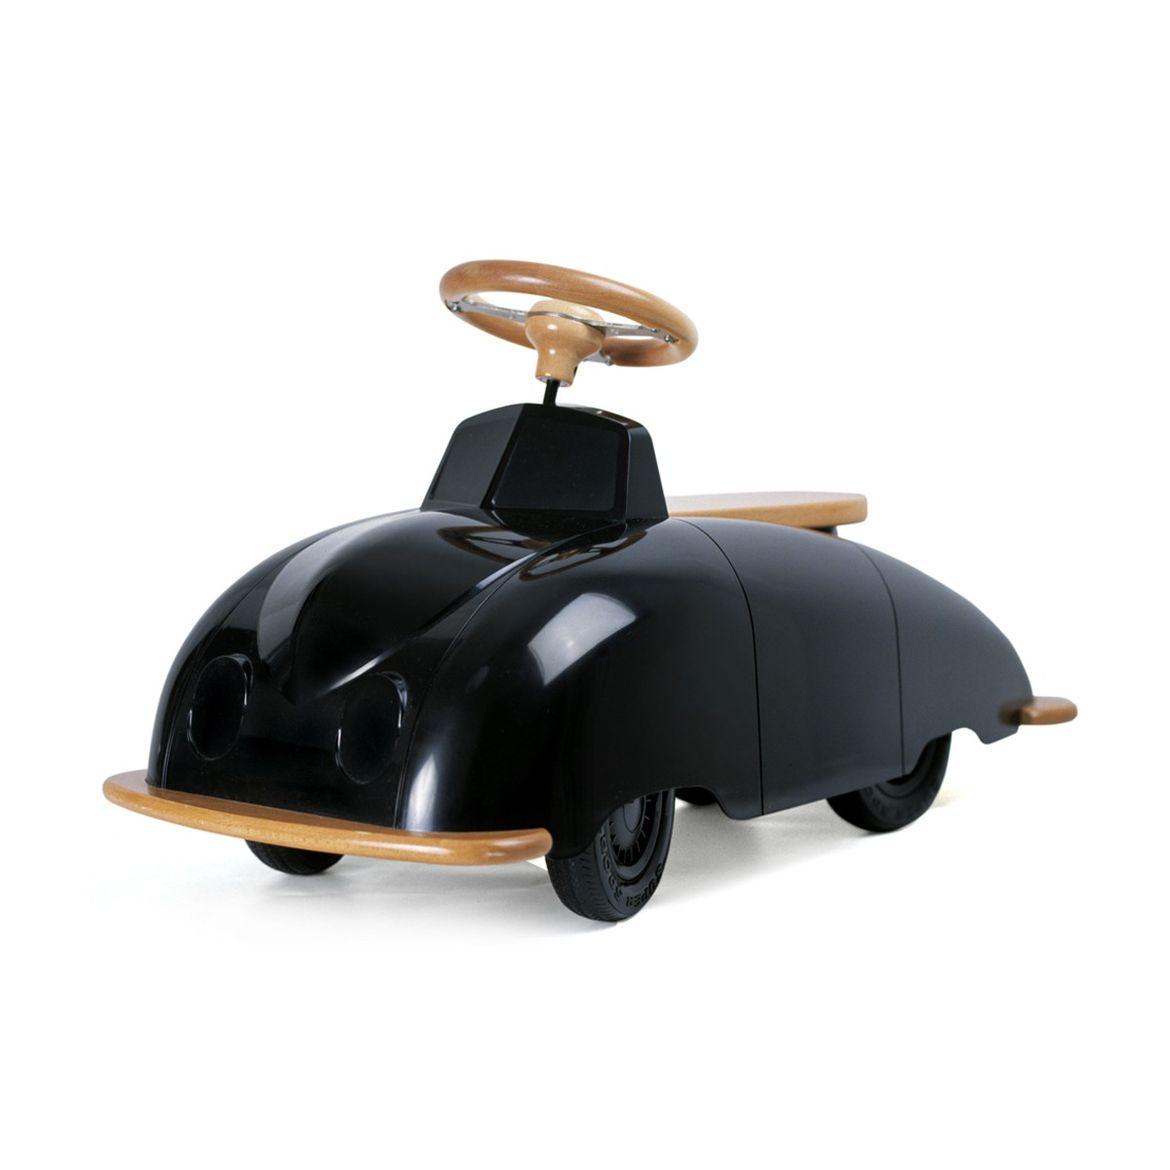 Kids ride-on car with glossy lacquer finish